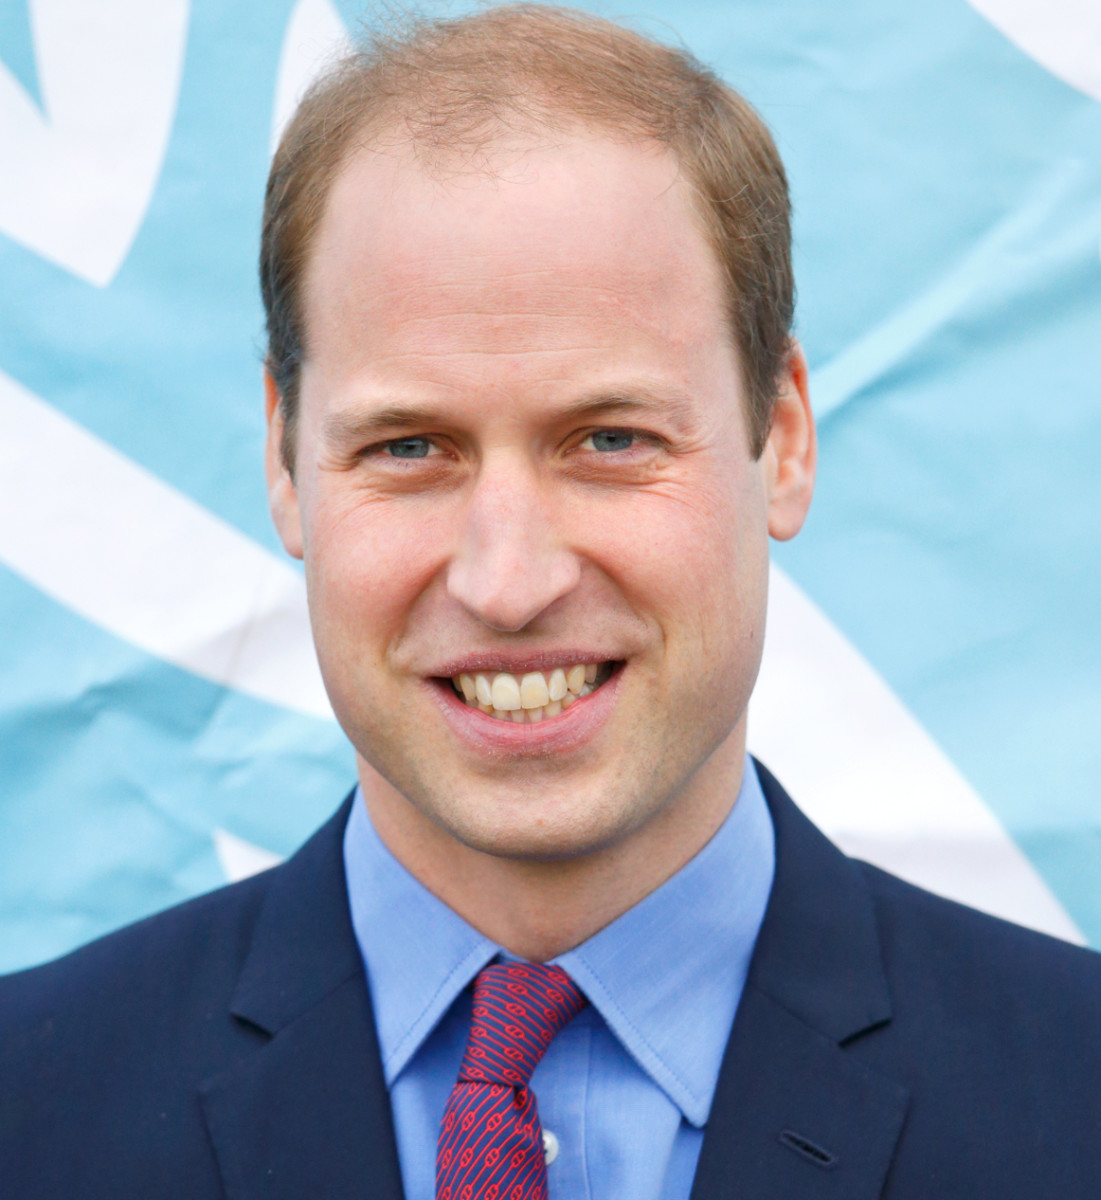 prince william windsor last name